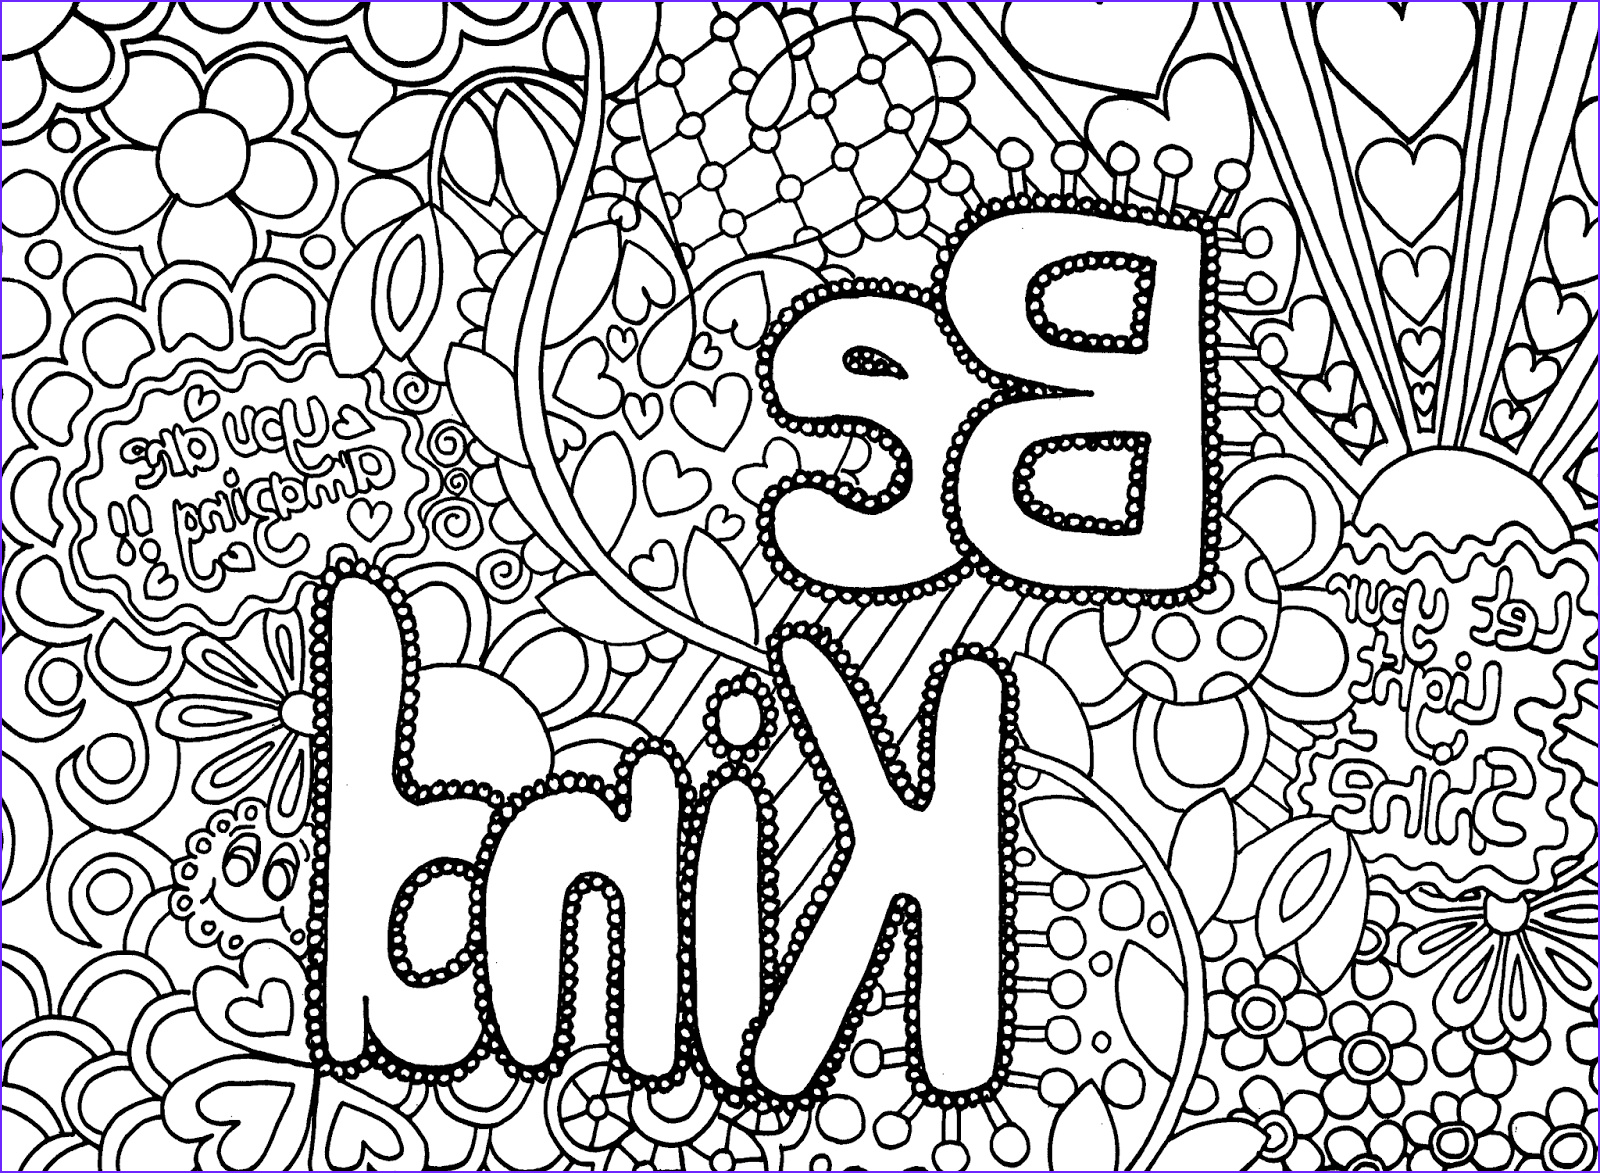 Hard Coloring Page for Girl Beautiful Image for the Last Few Years Kid S Coloring Pages Printed From